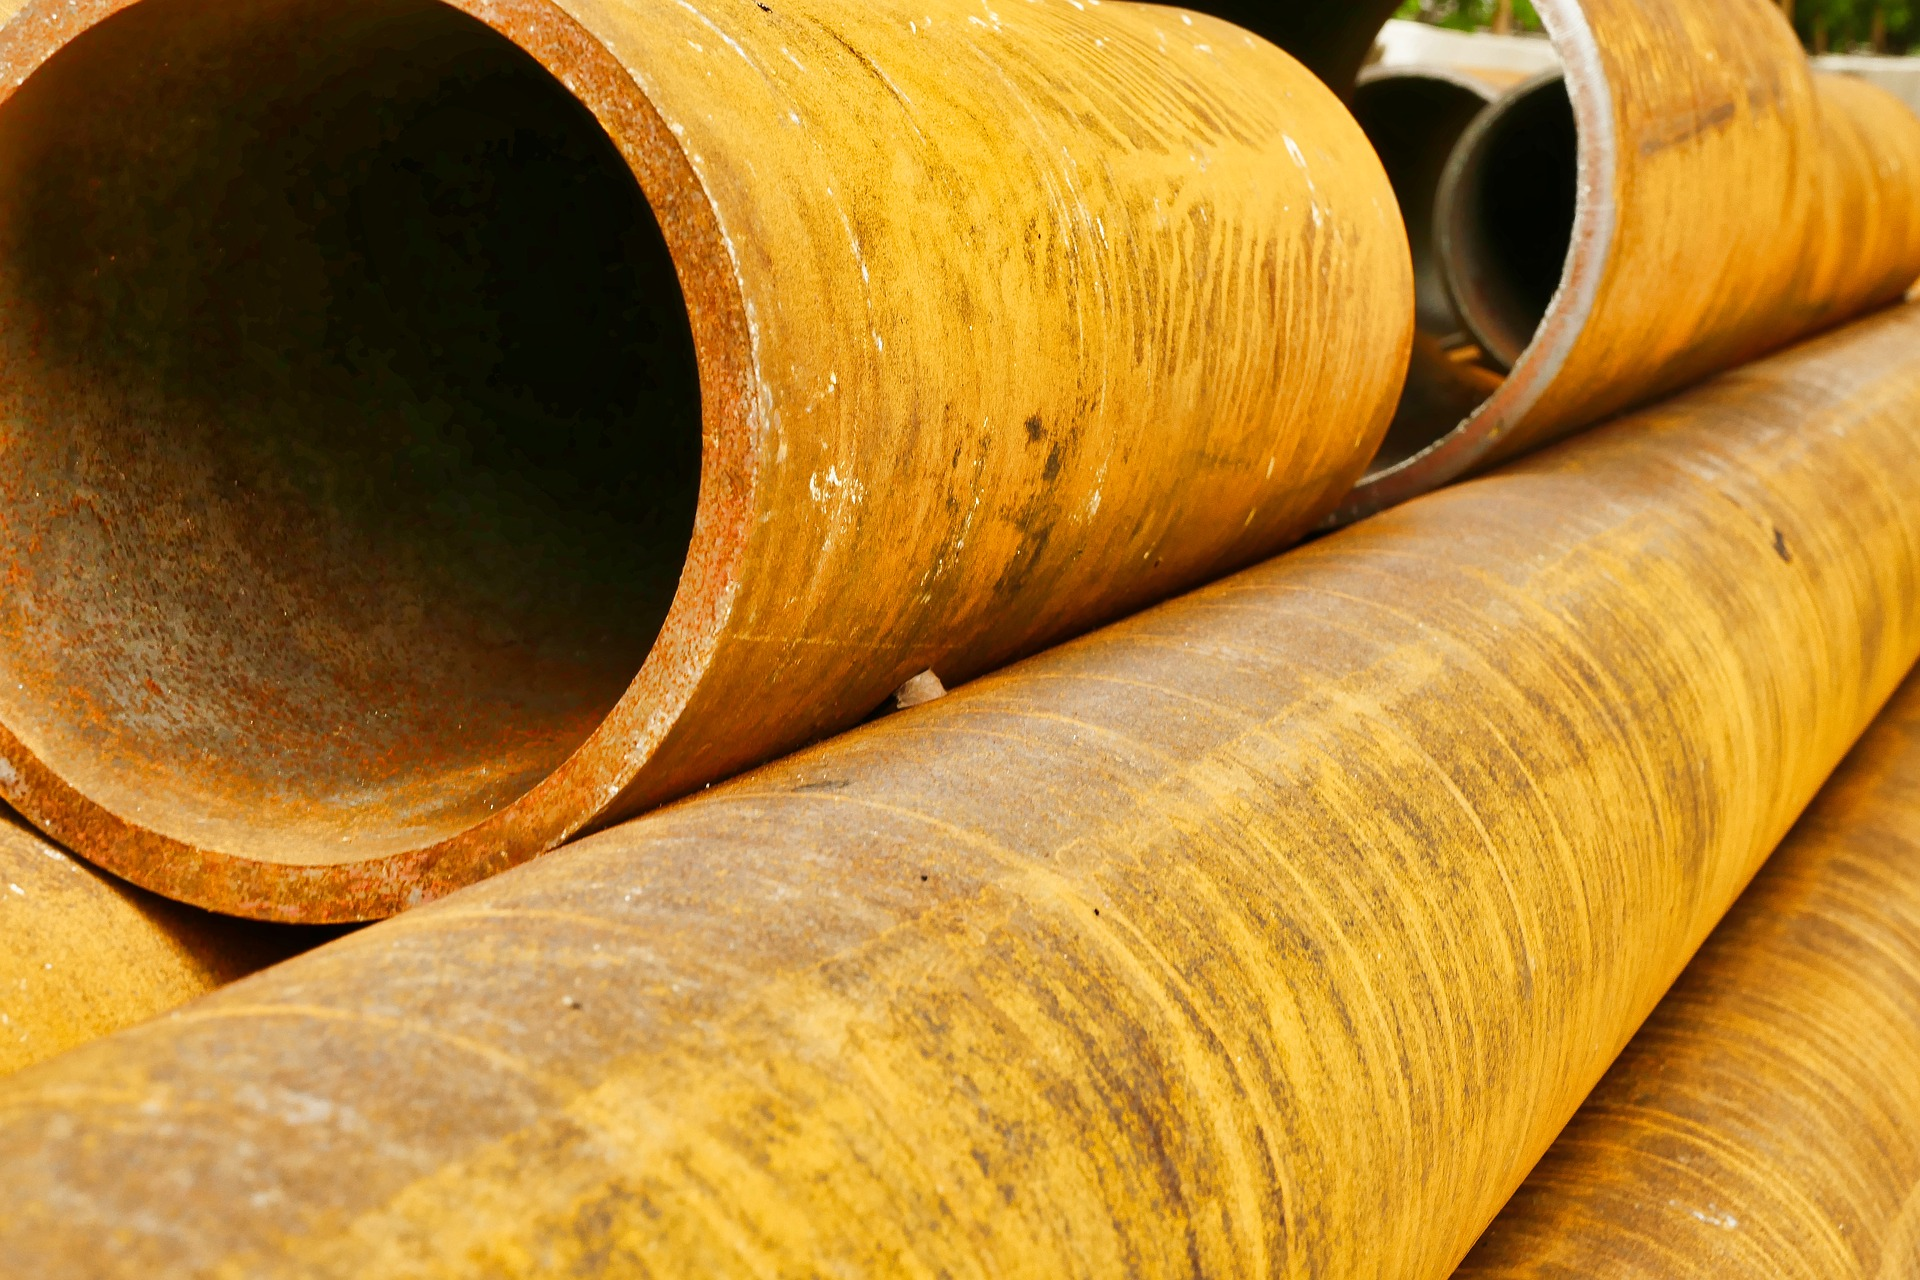 East-African-Crude-Oil-Pipeline-Project-EACOP-oil-pipelines-internet-bull-report